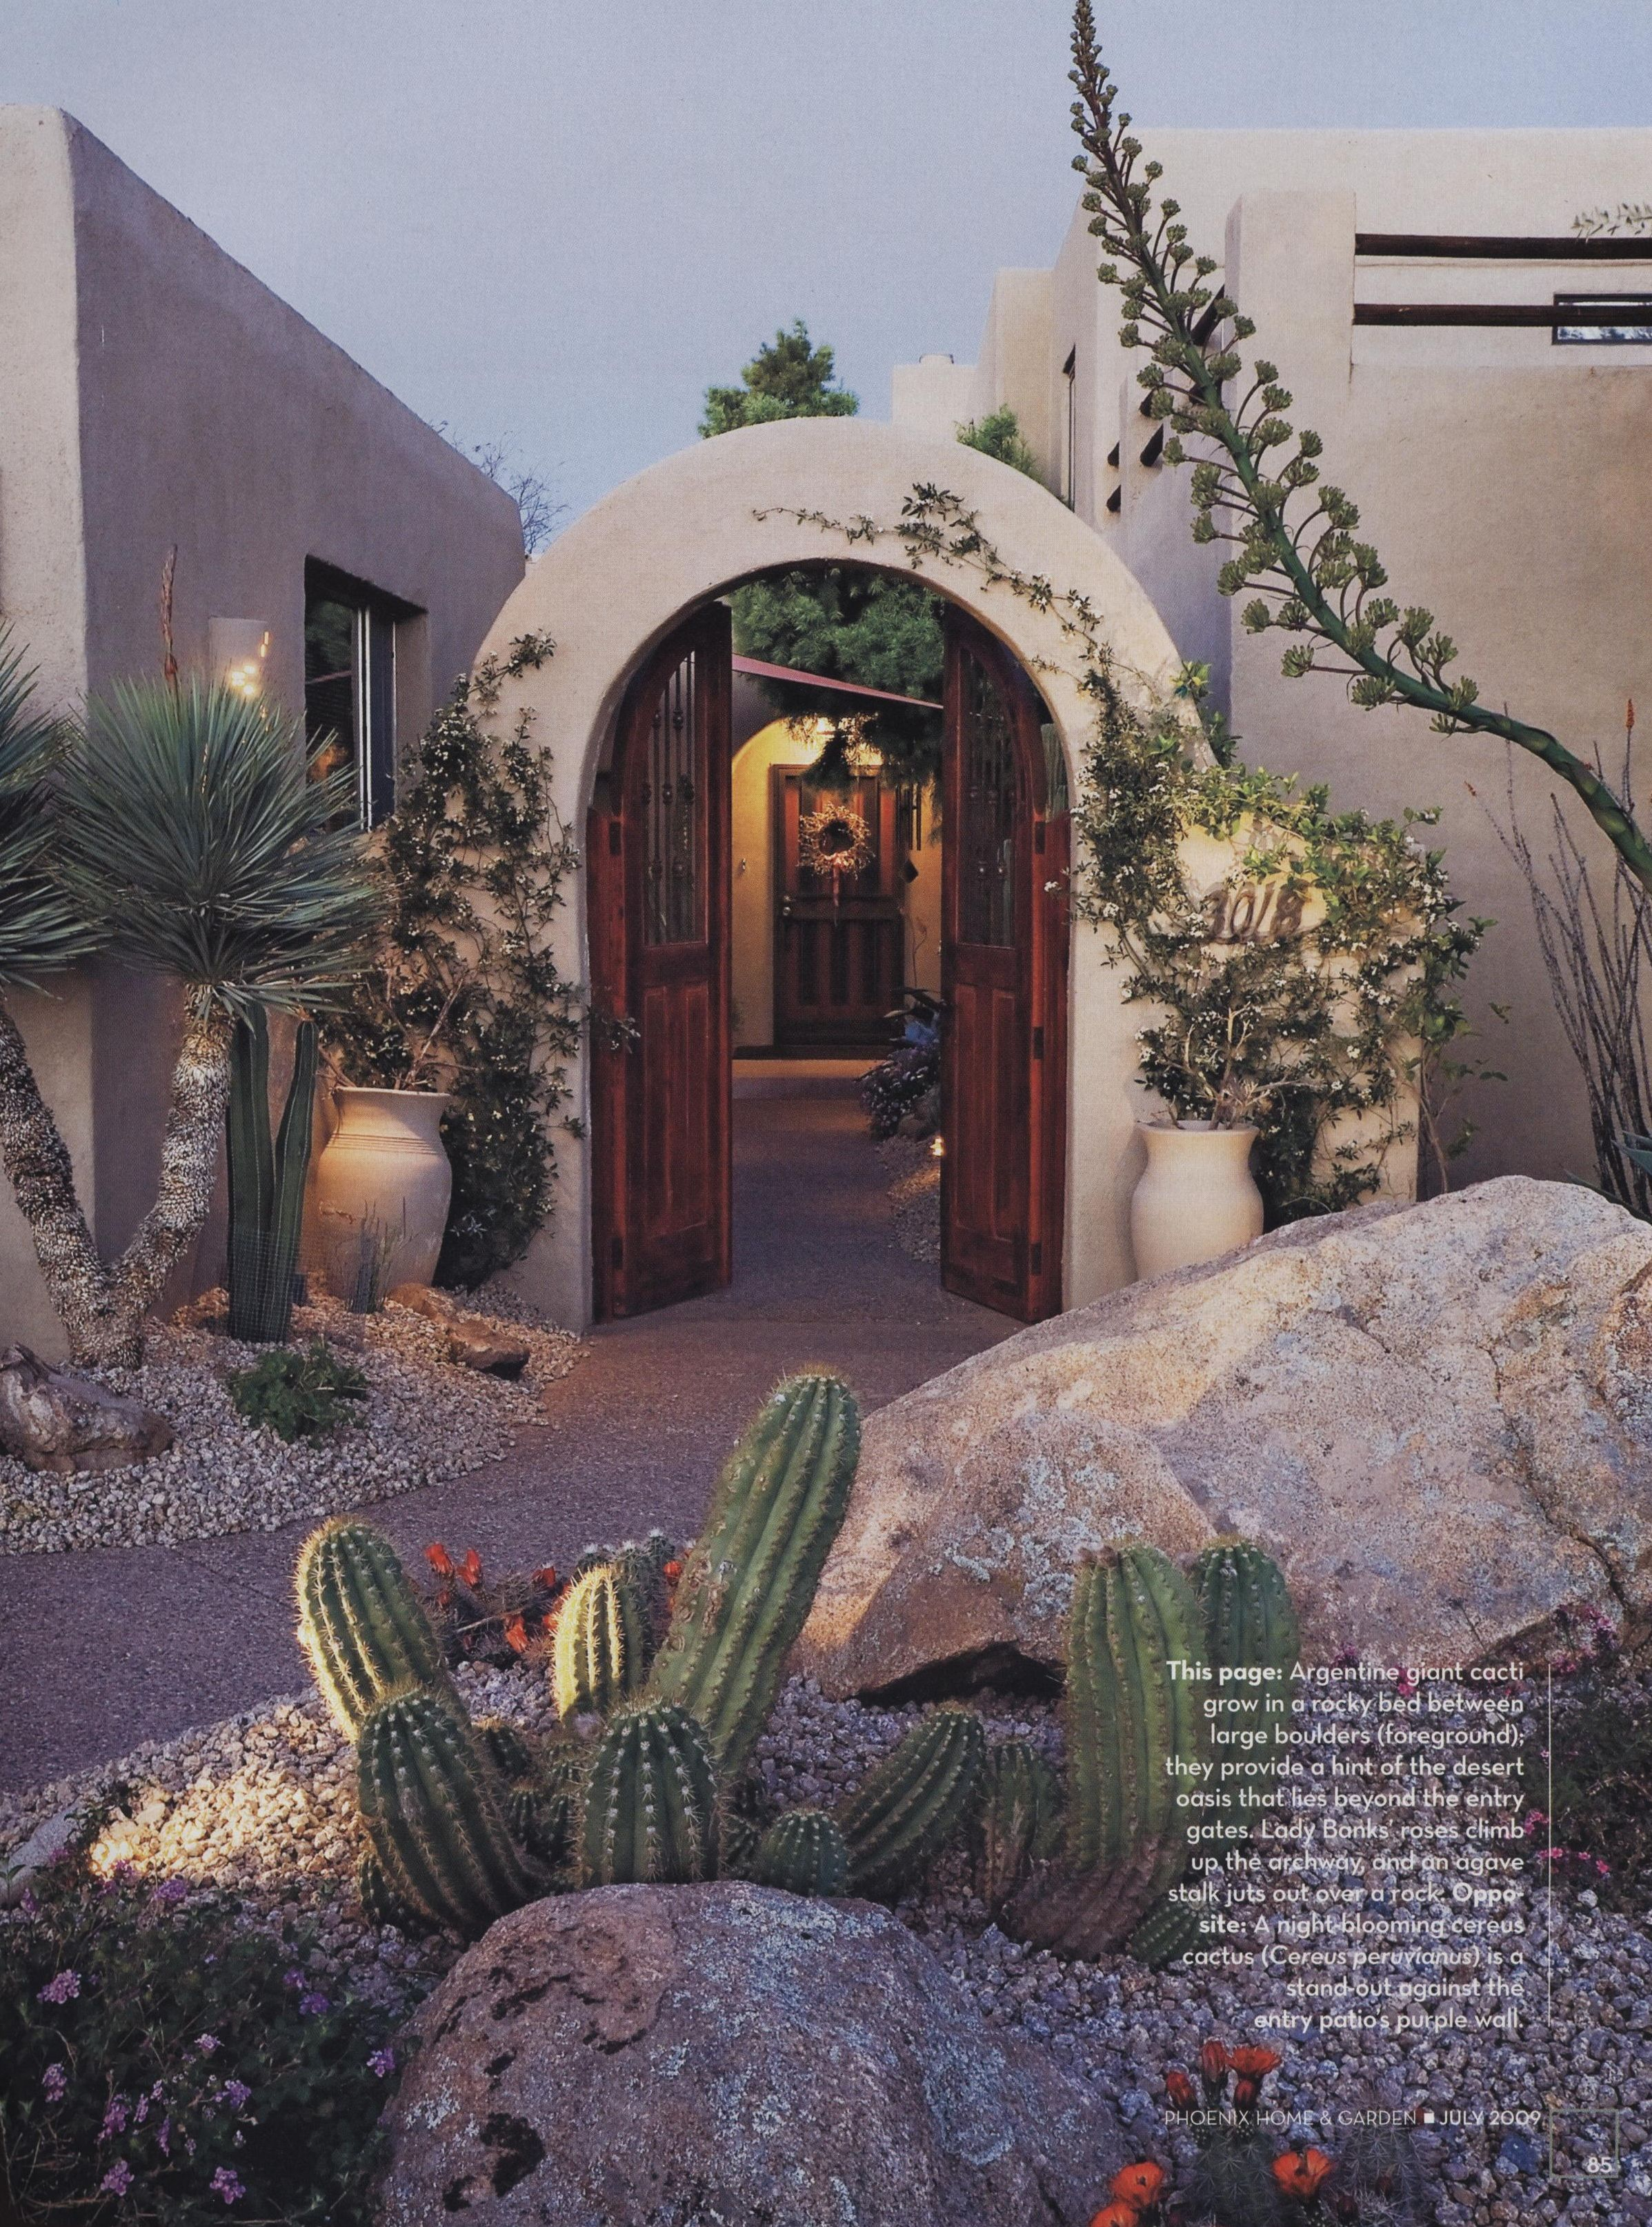 Plus Entry To Courtyard From Phoenix Home Garden Magazine July 2009 Spanish